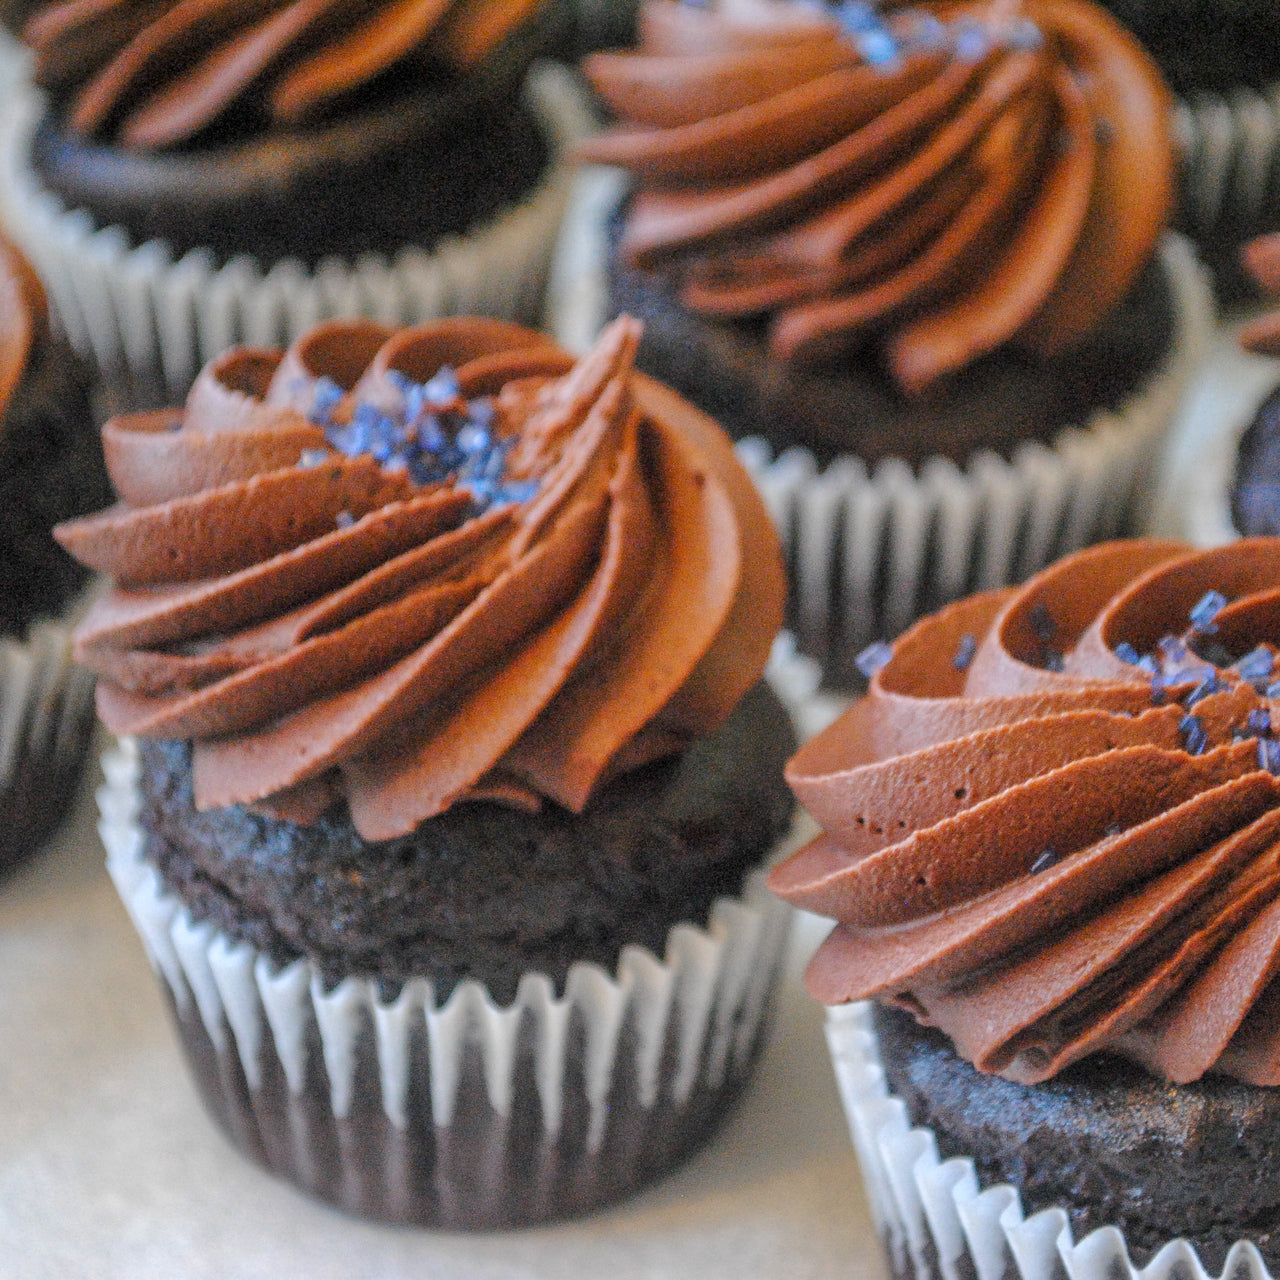 Vegan Chocolate Cupcakes with Chocolate Frosting